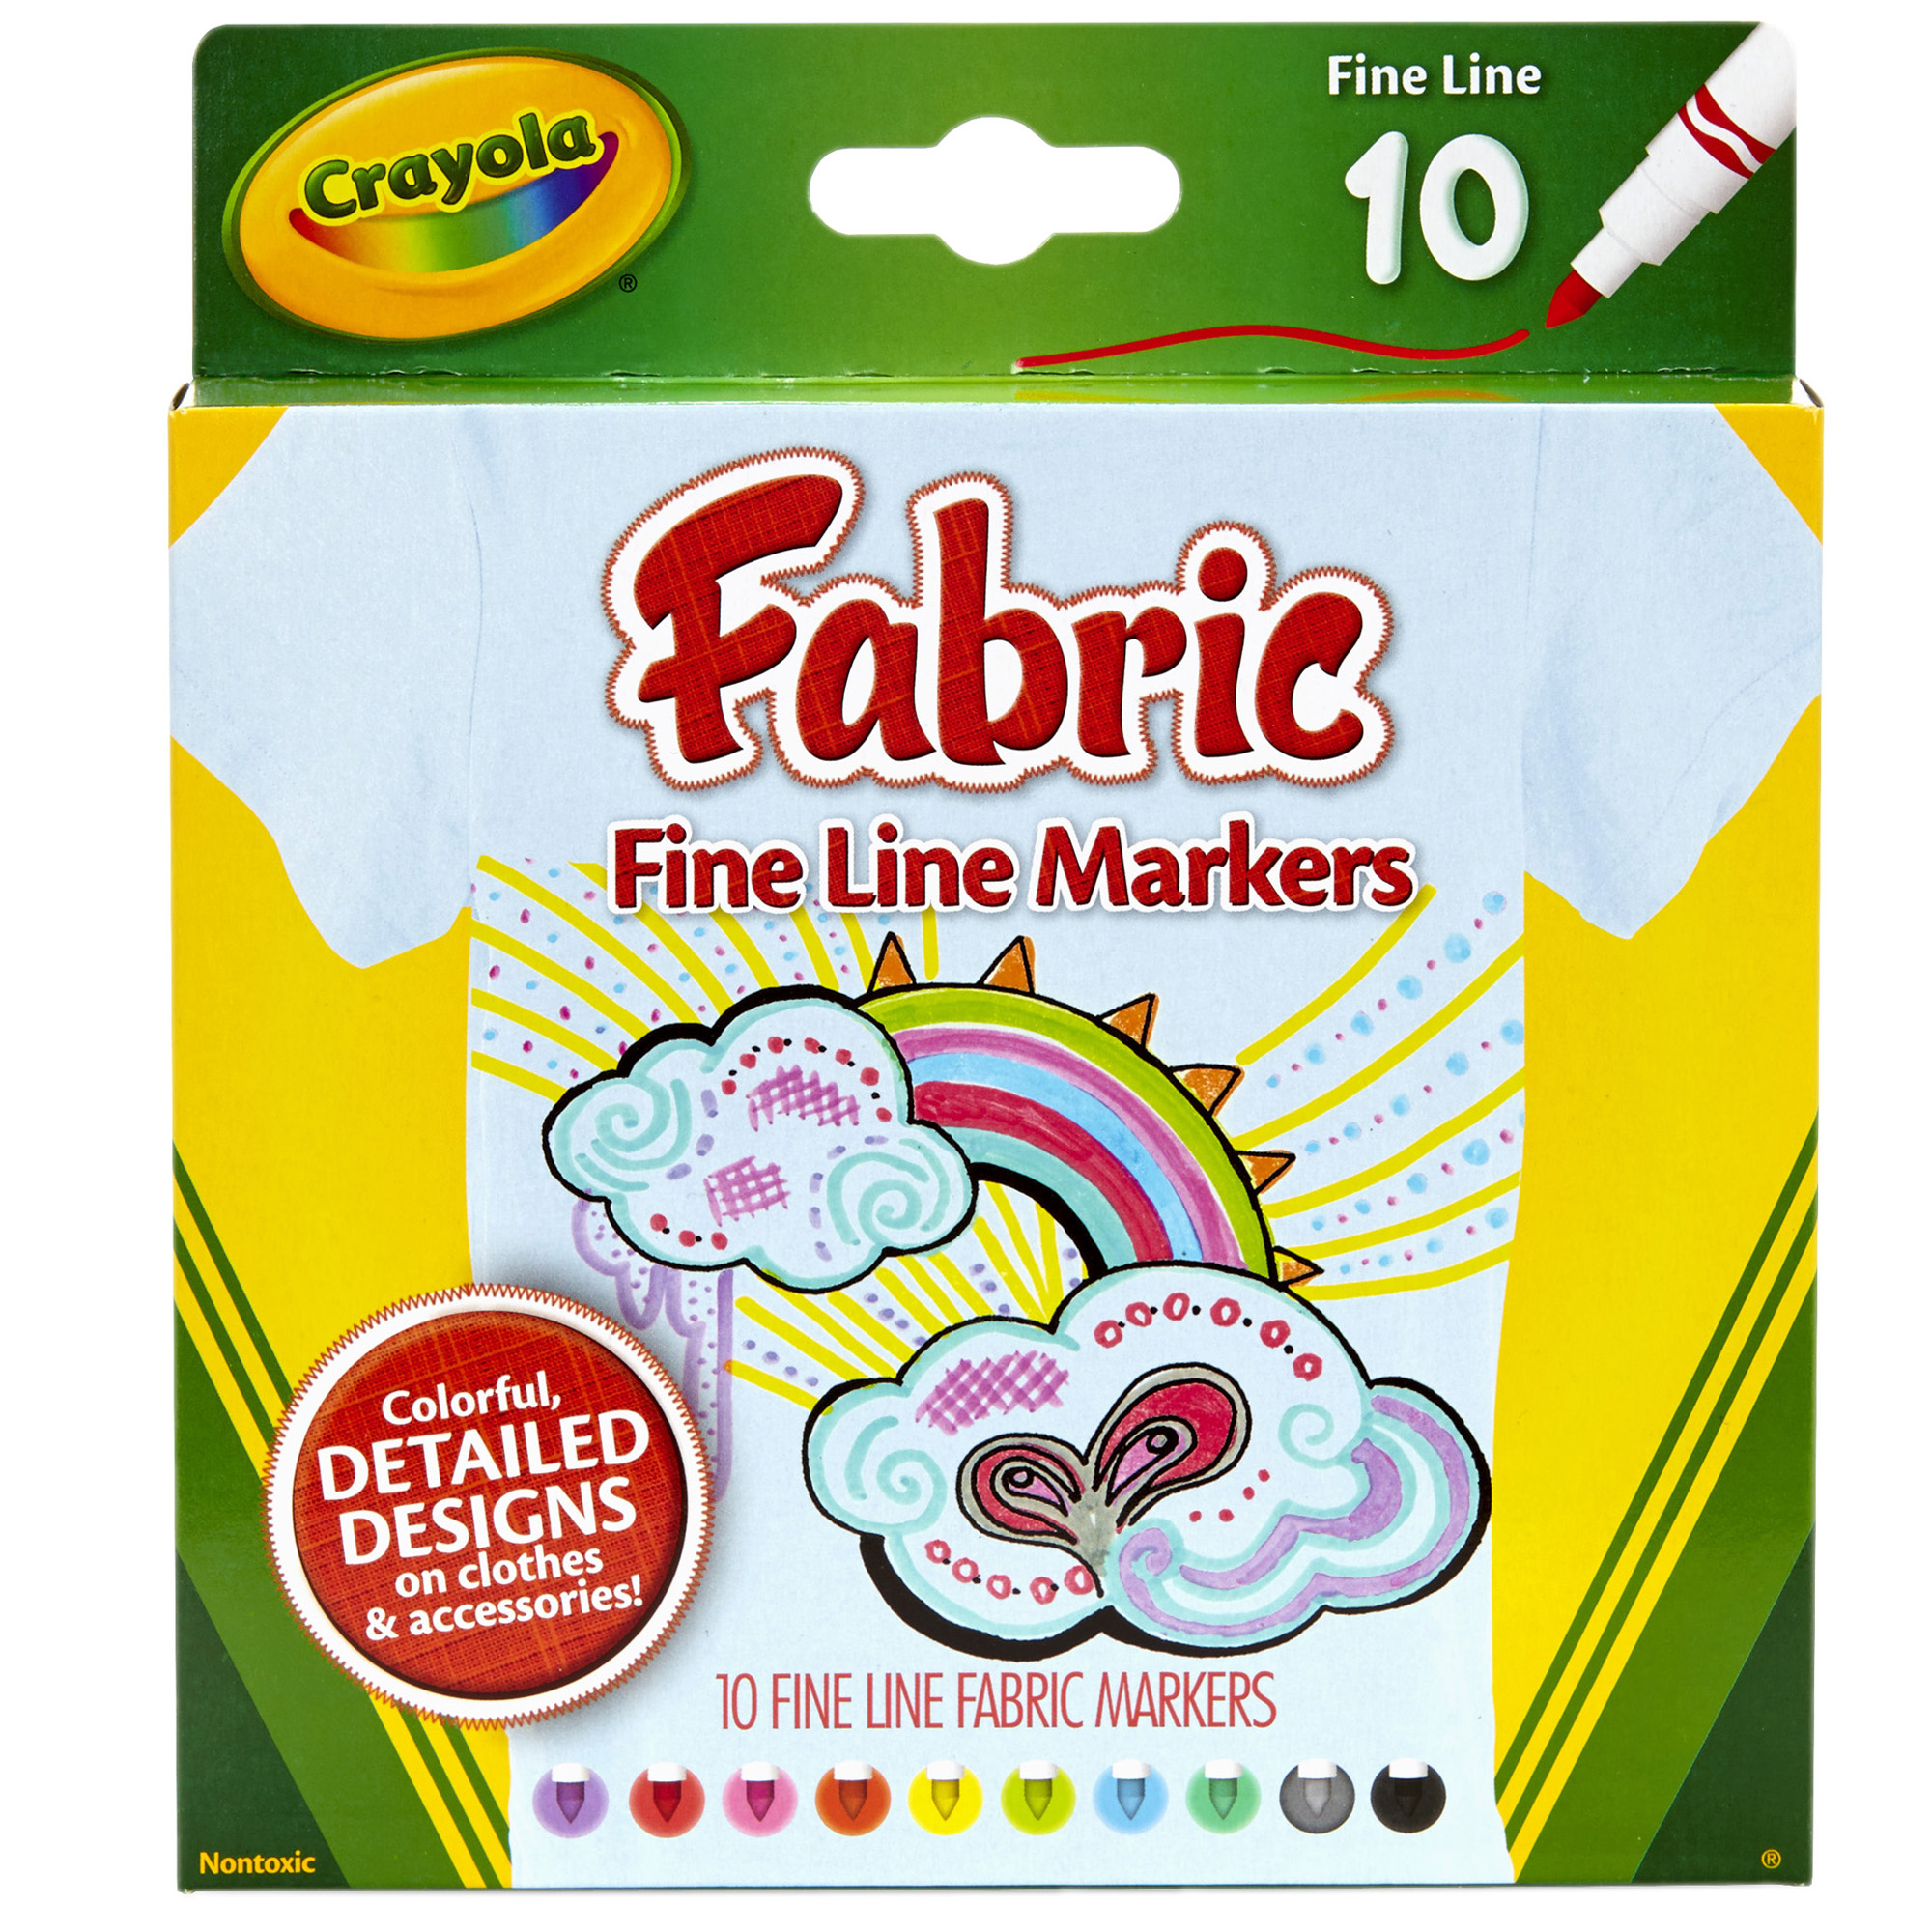 Crayola Fine Line Fabric Markers, 10 Colors Per Box, Set Of 4 Boxes